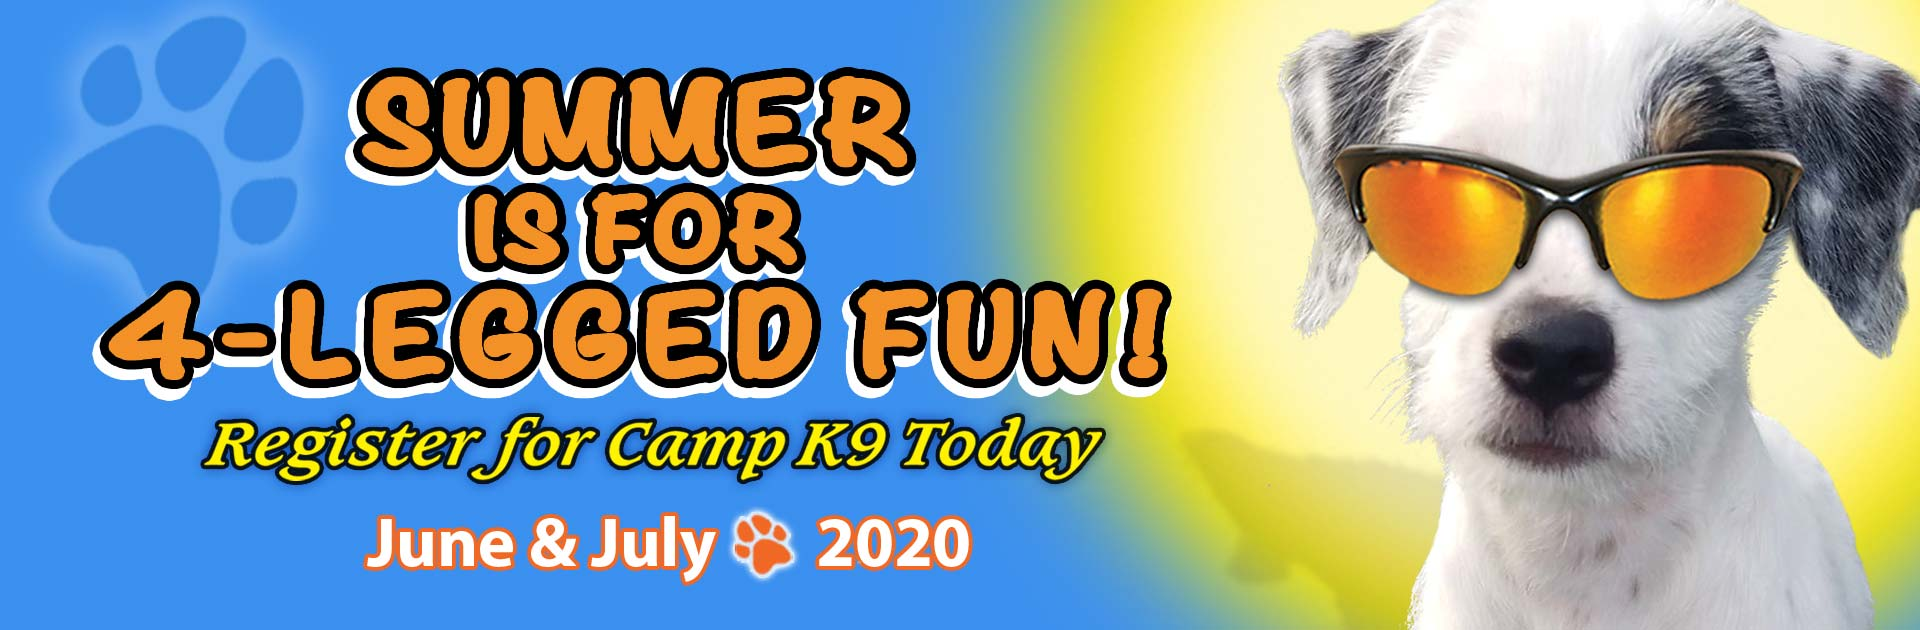 Summer is for 4-Legged Fun! Register for Camp K9 Today June & July 2020